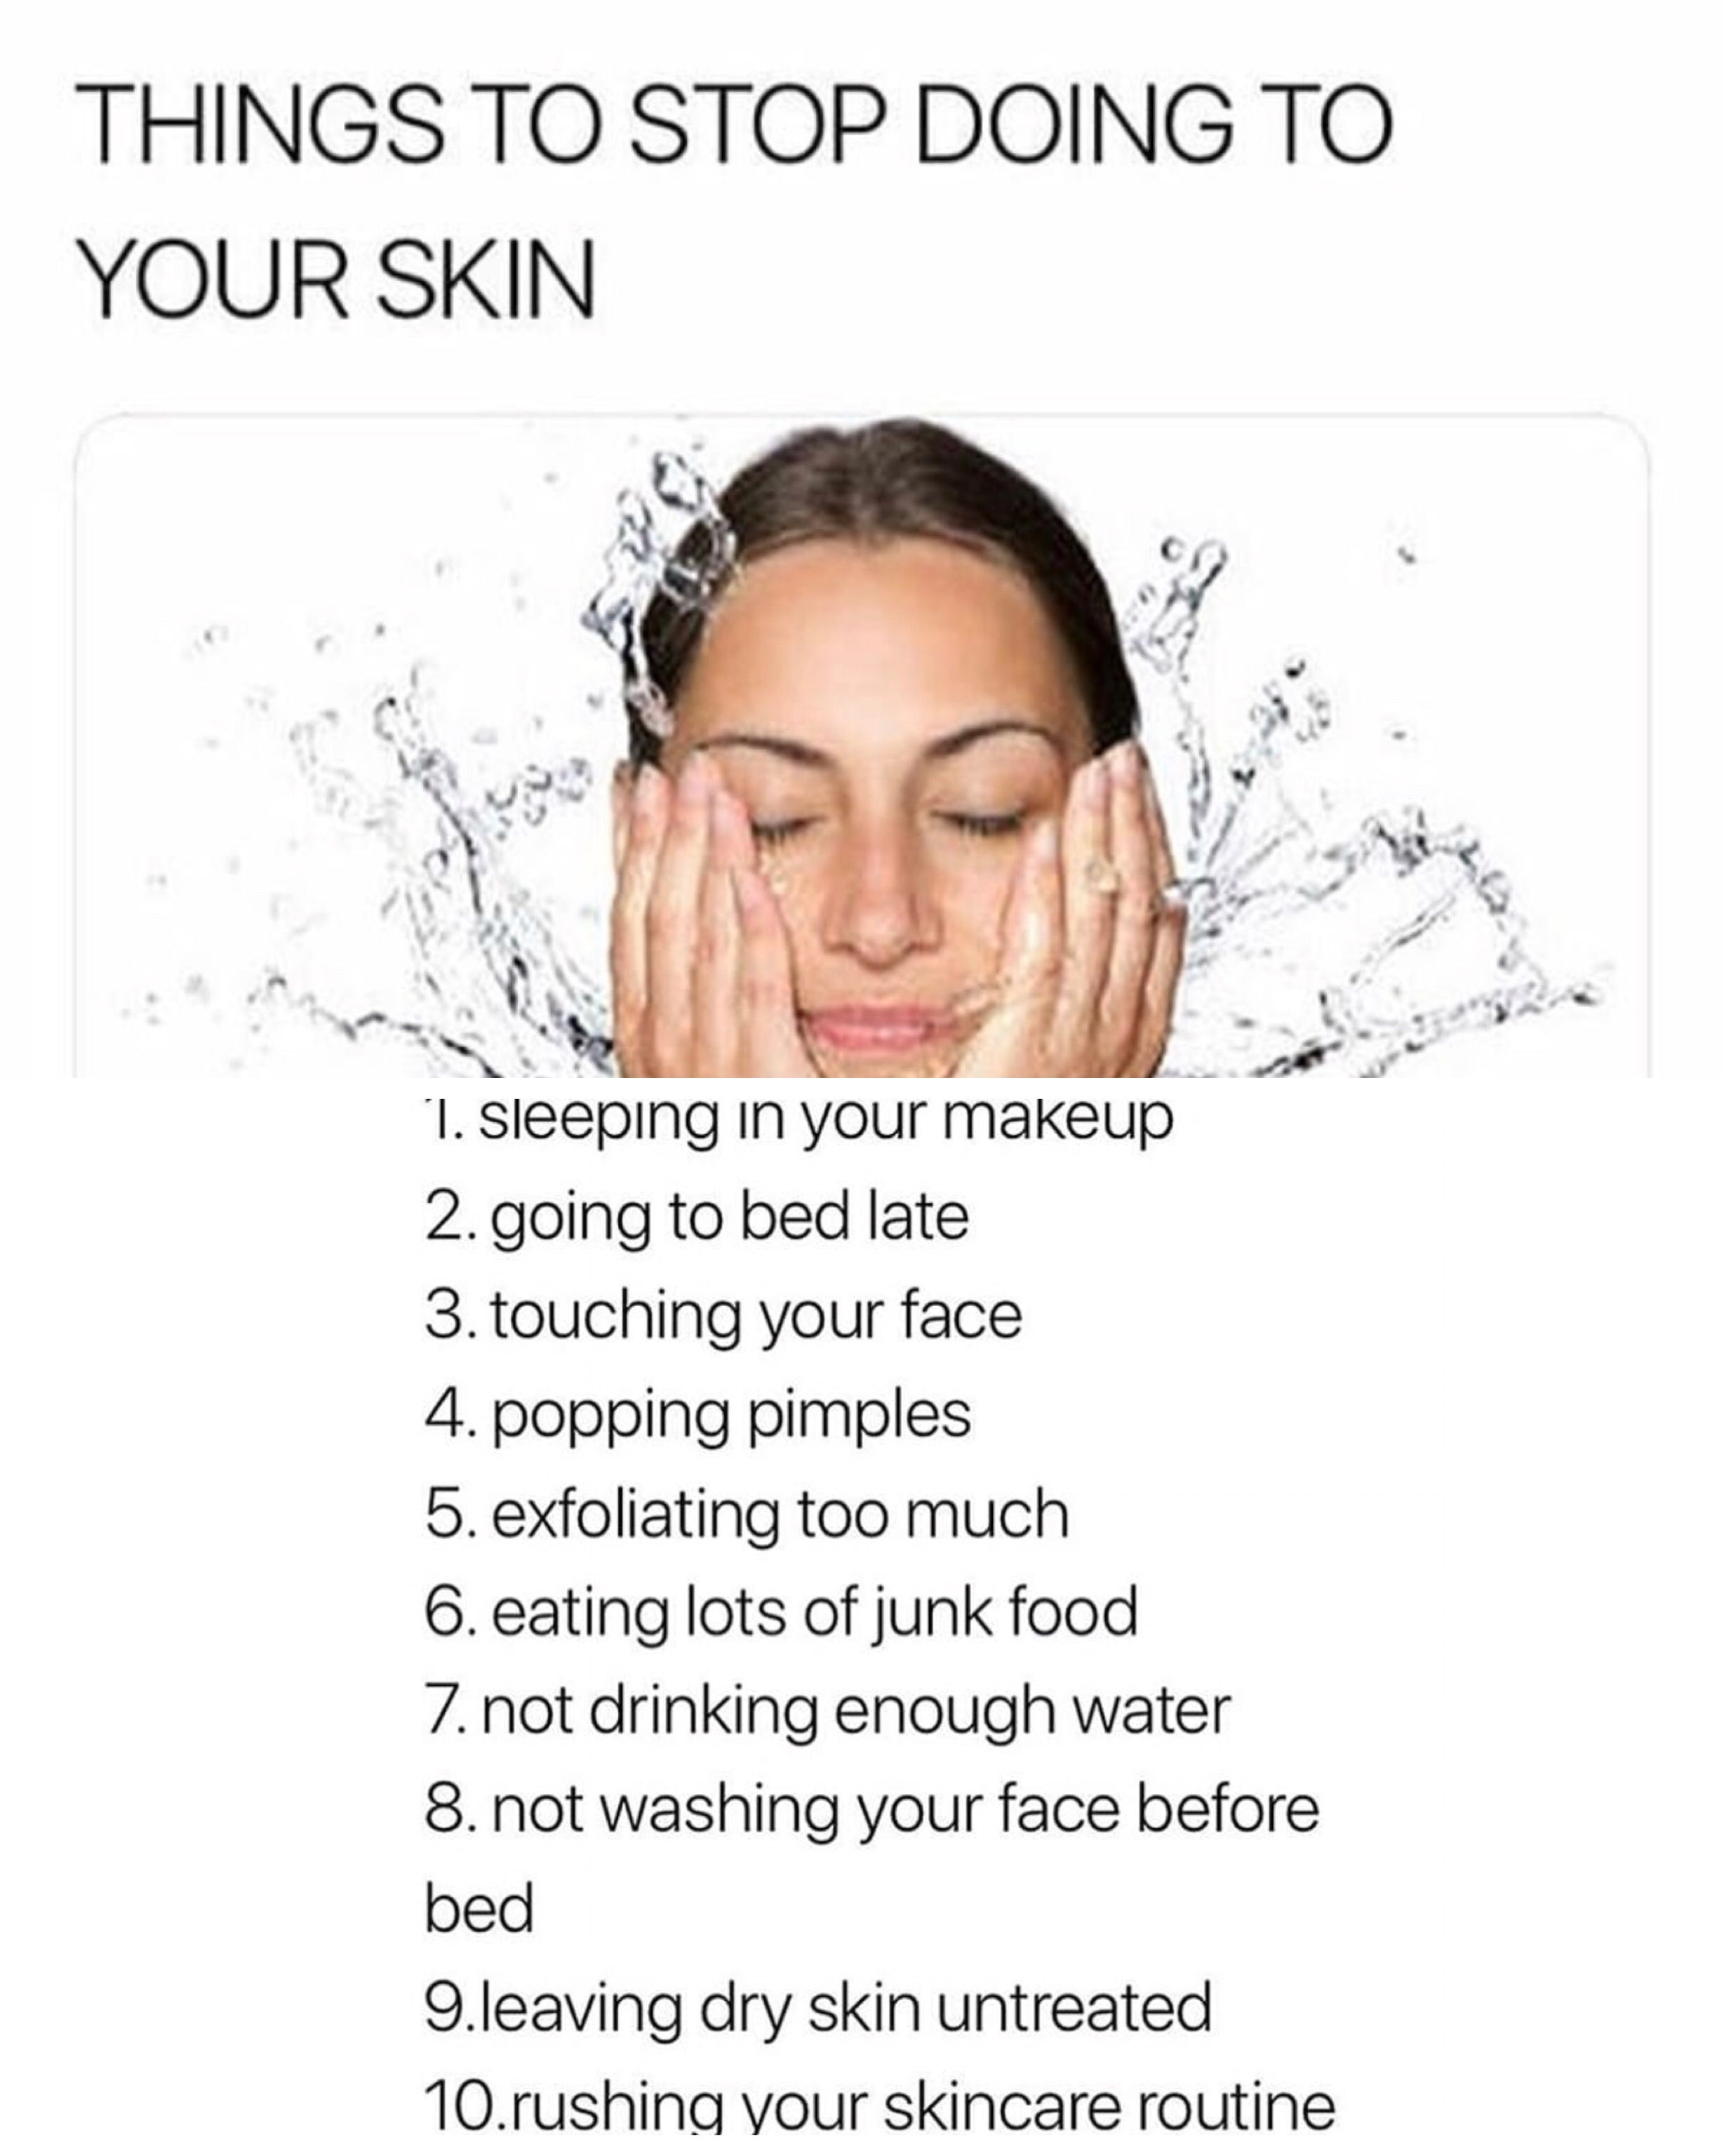 Pin by lilypad11 on BadBx Things♀️.  Sensitive skin care